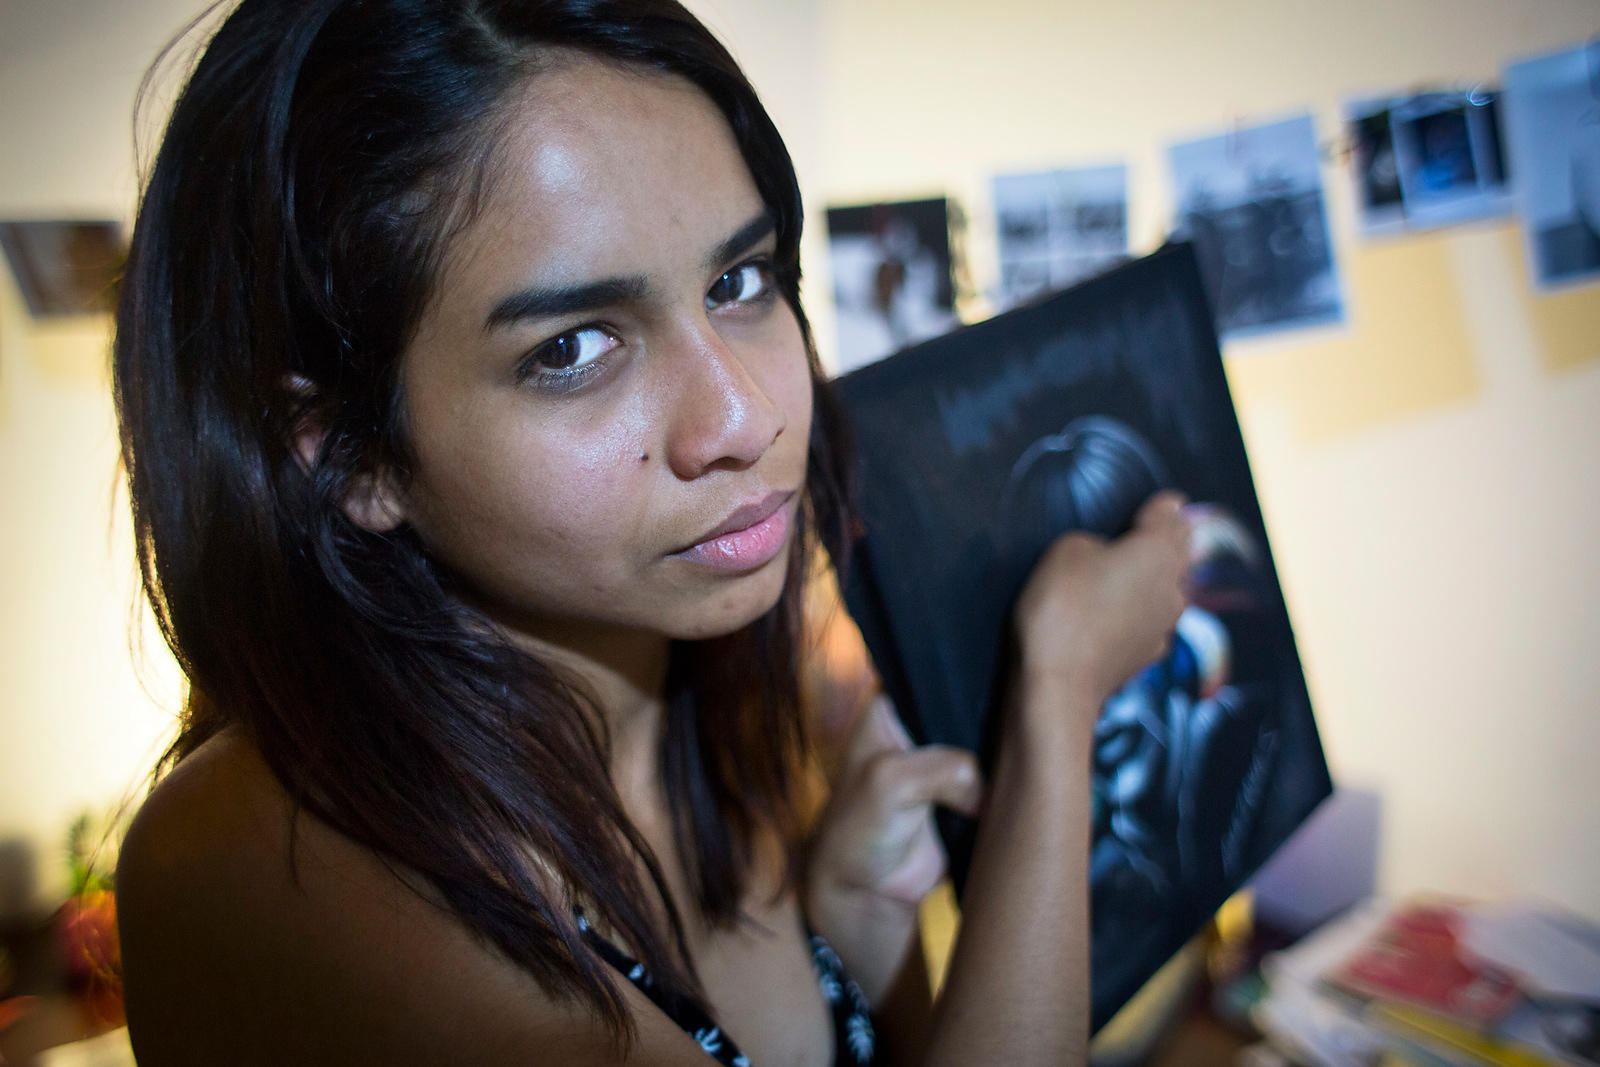 Laura, 22, is Sikuani by her mother and is a victim of the civil war. In Bogota since 3 years, she discovered ways to express...